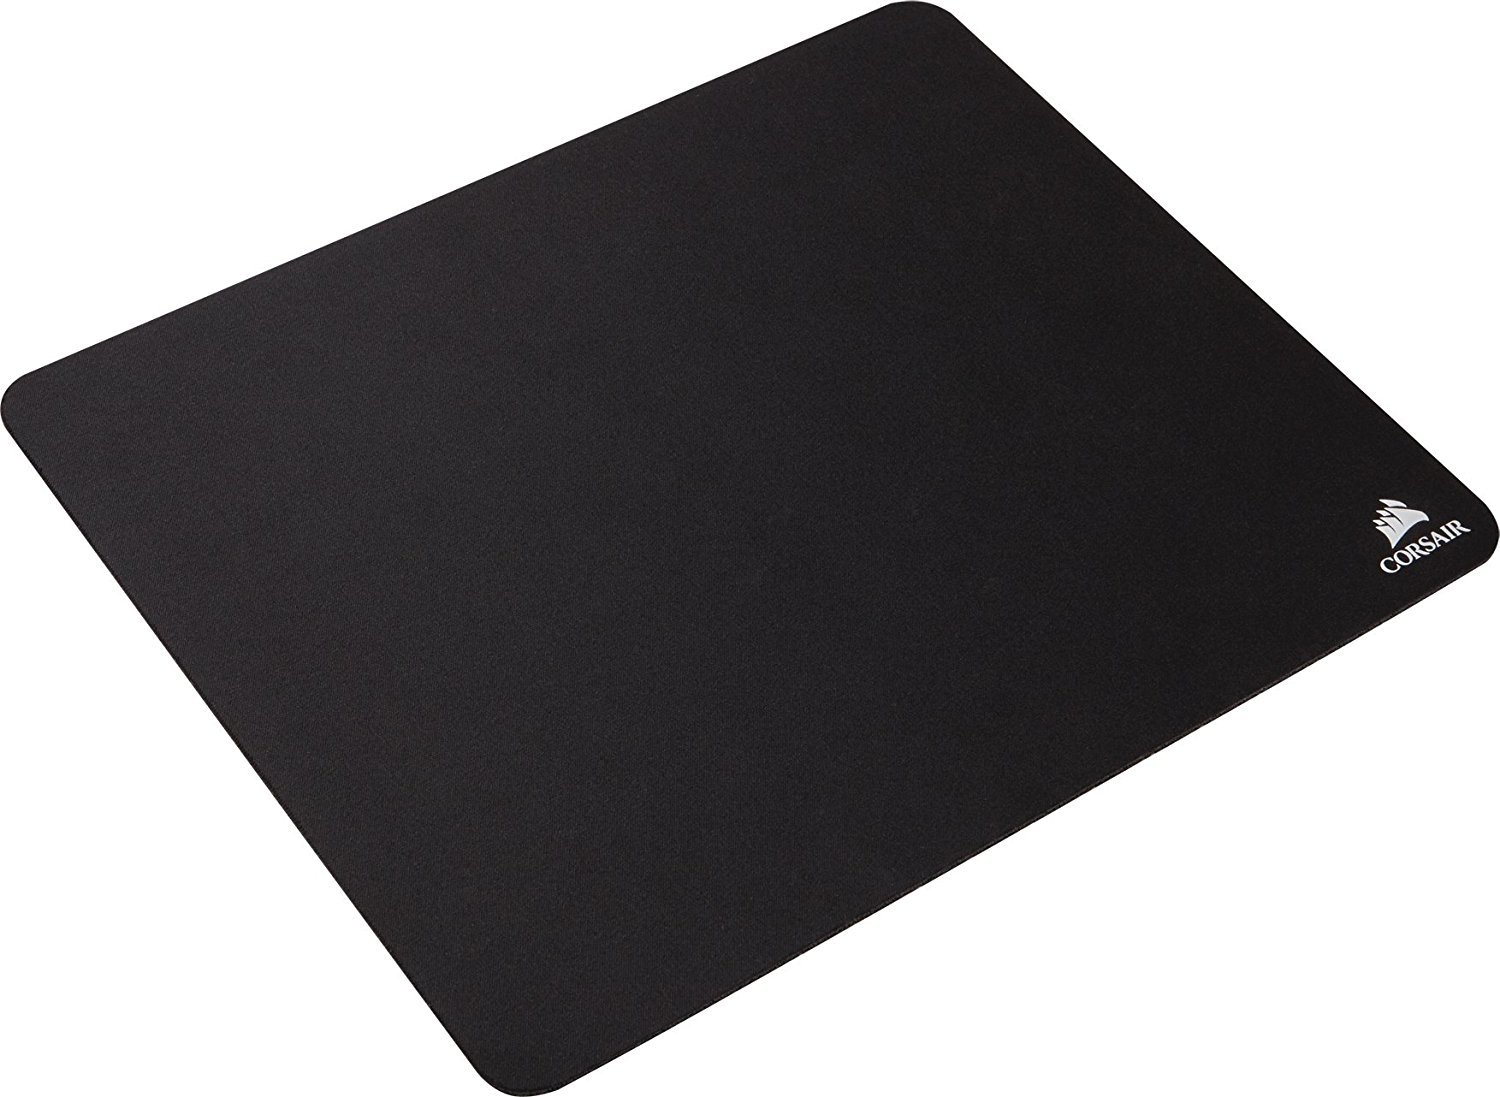 Corsair MM100 Gaming Mouse Mat - Medium for PC Games image